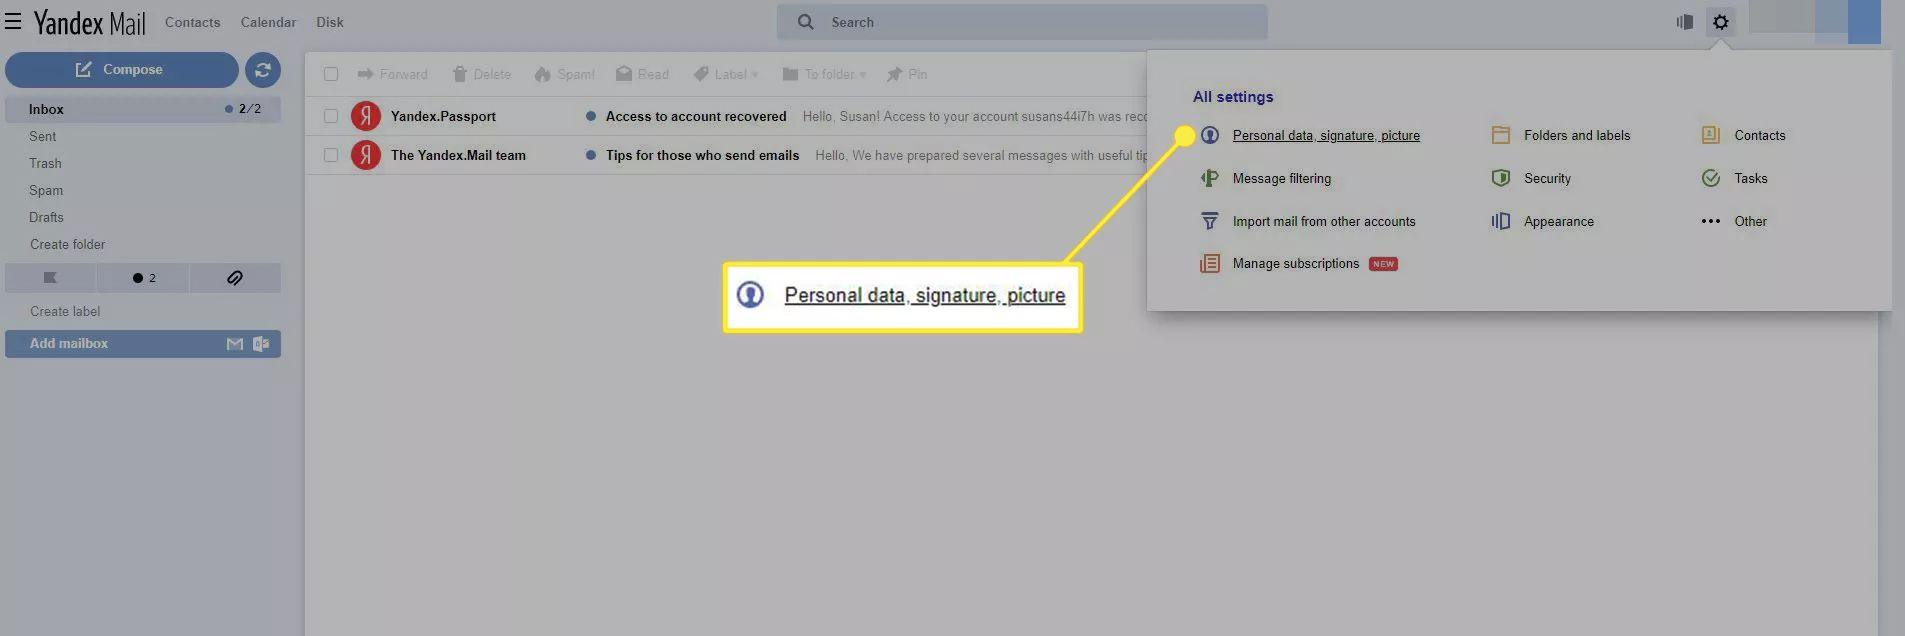 The Yandex Mail app with 'Personal data, signature, picture' highlighted